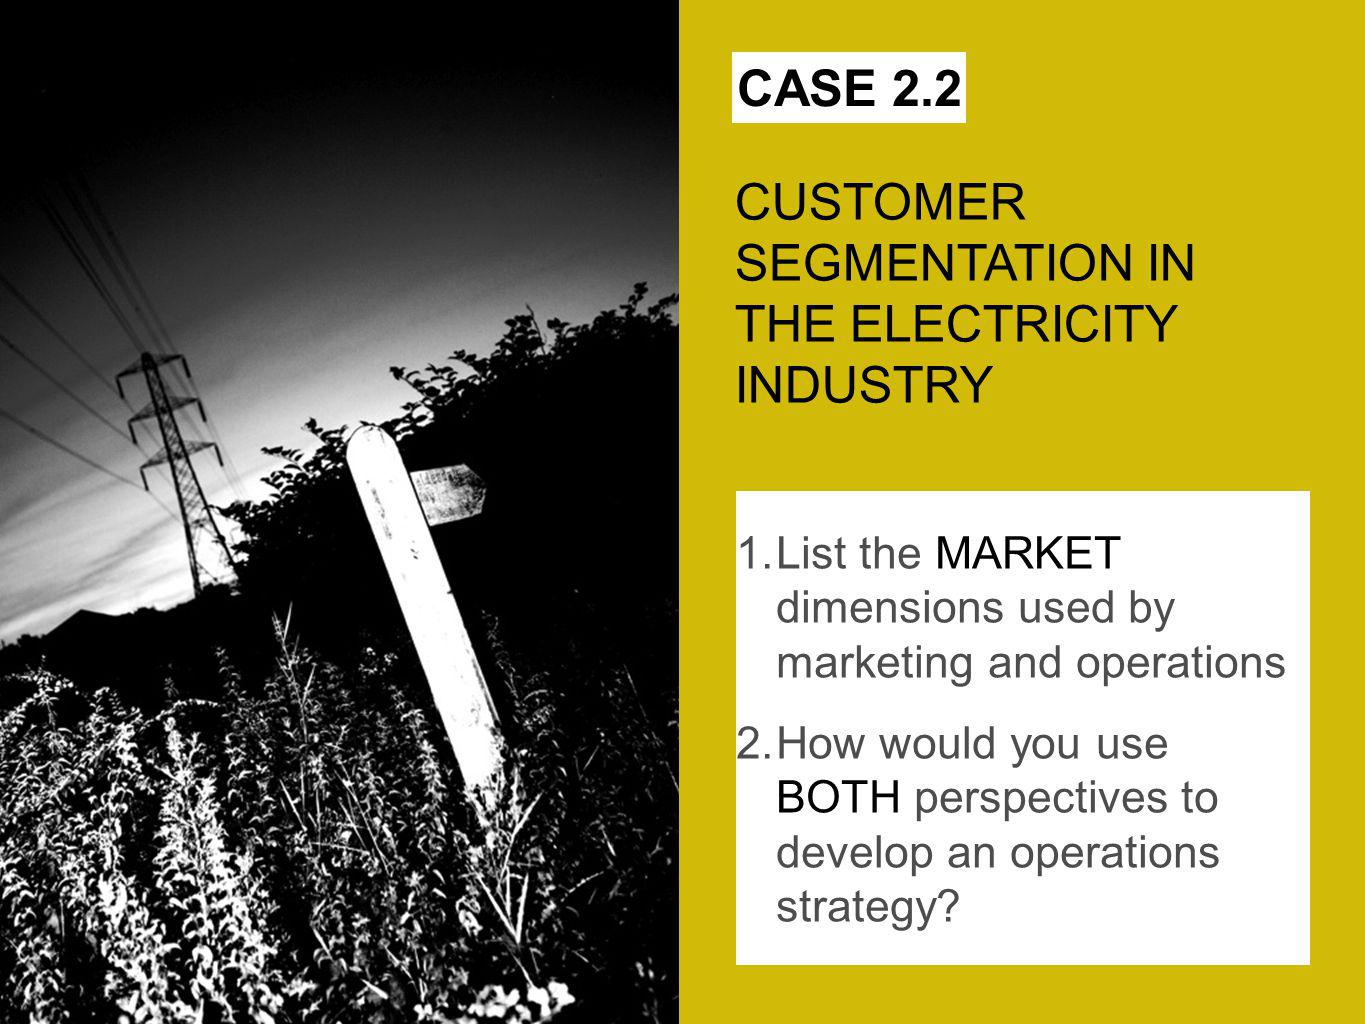 CUSTOMER SEGMENTATION IN THE ELECTRICITY INDUSTRY